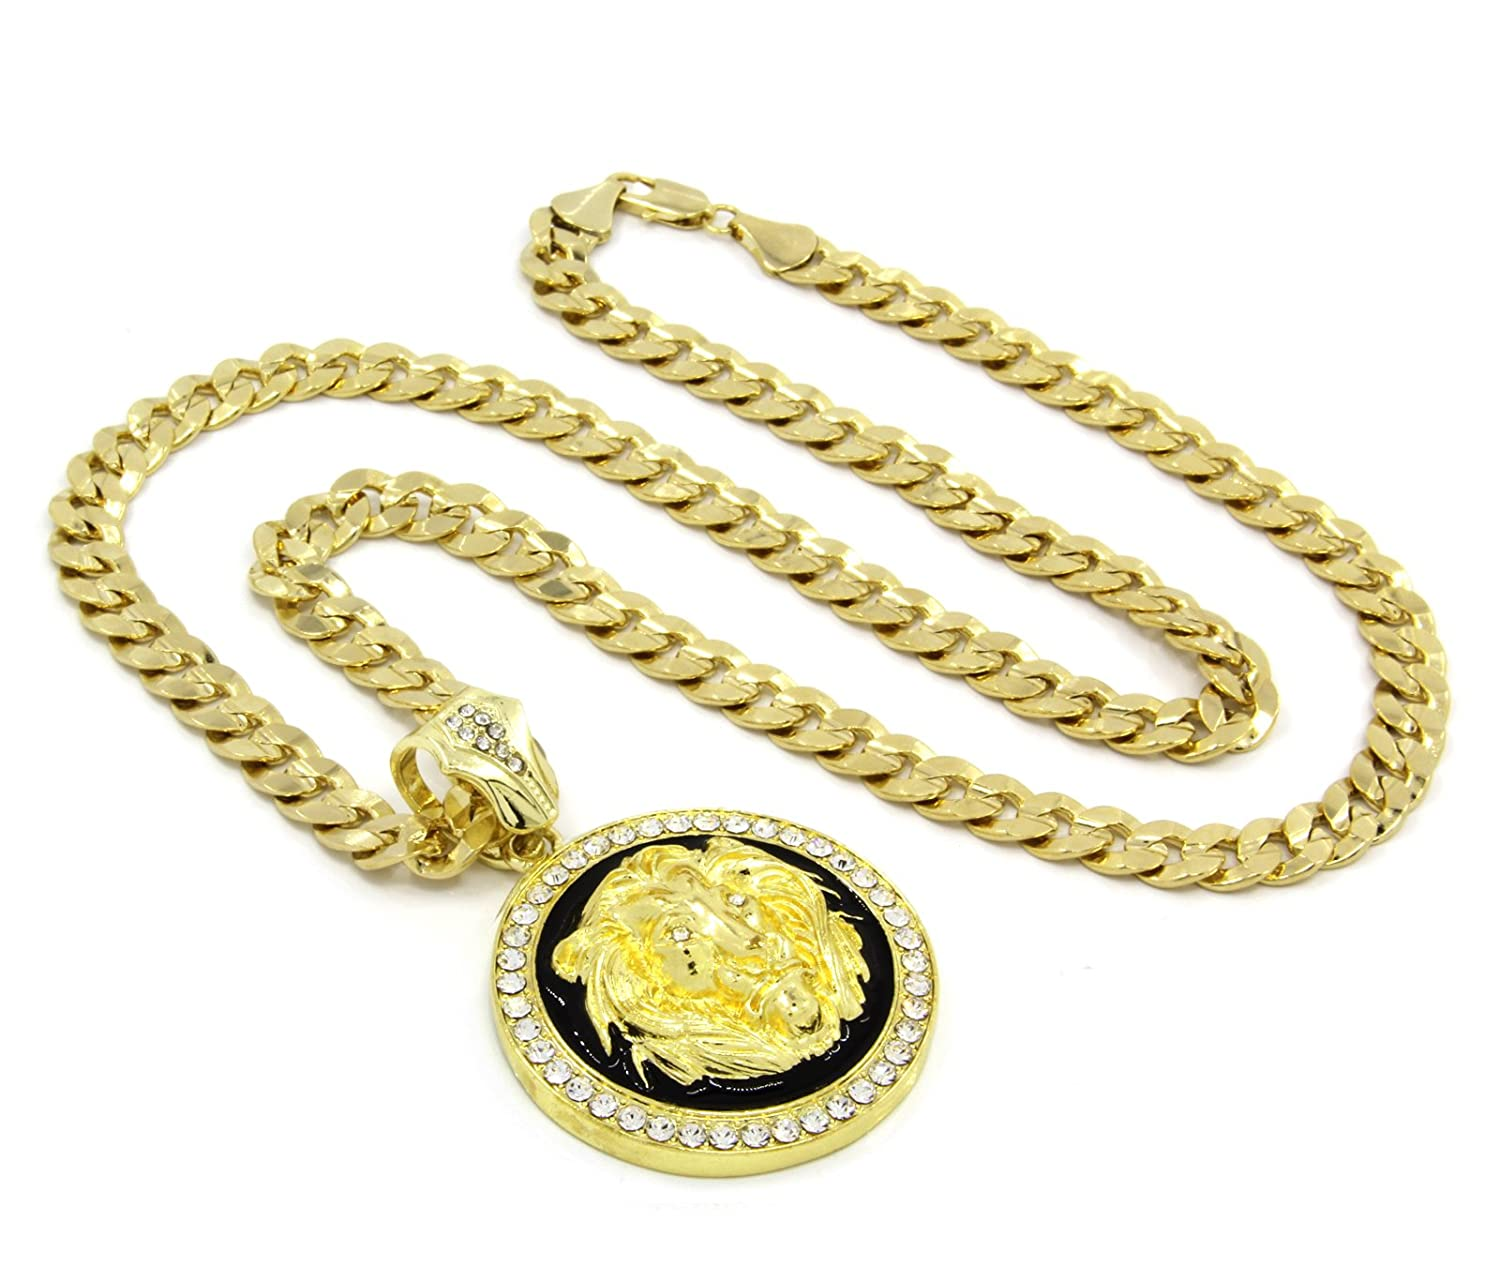 Mens Gold Chains Nyc - Best Chain 2018